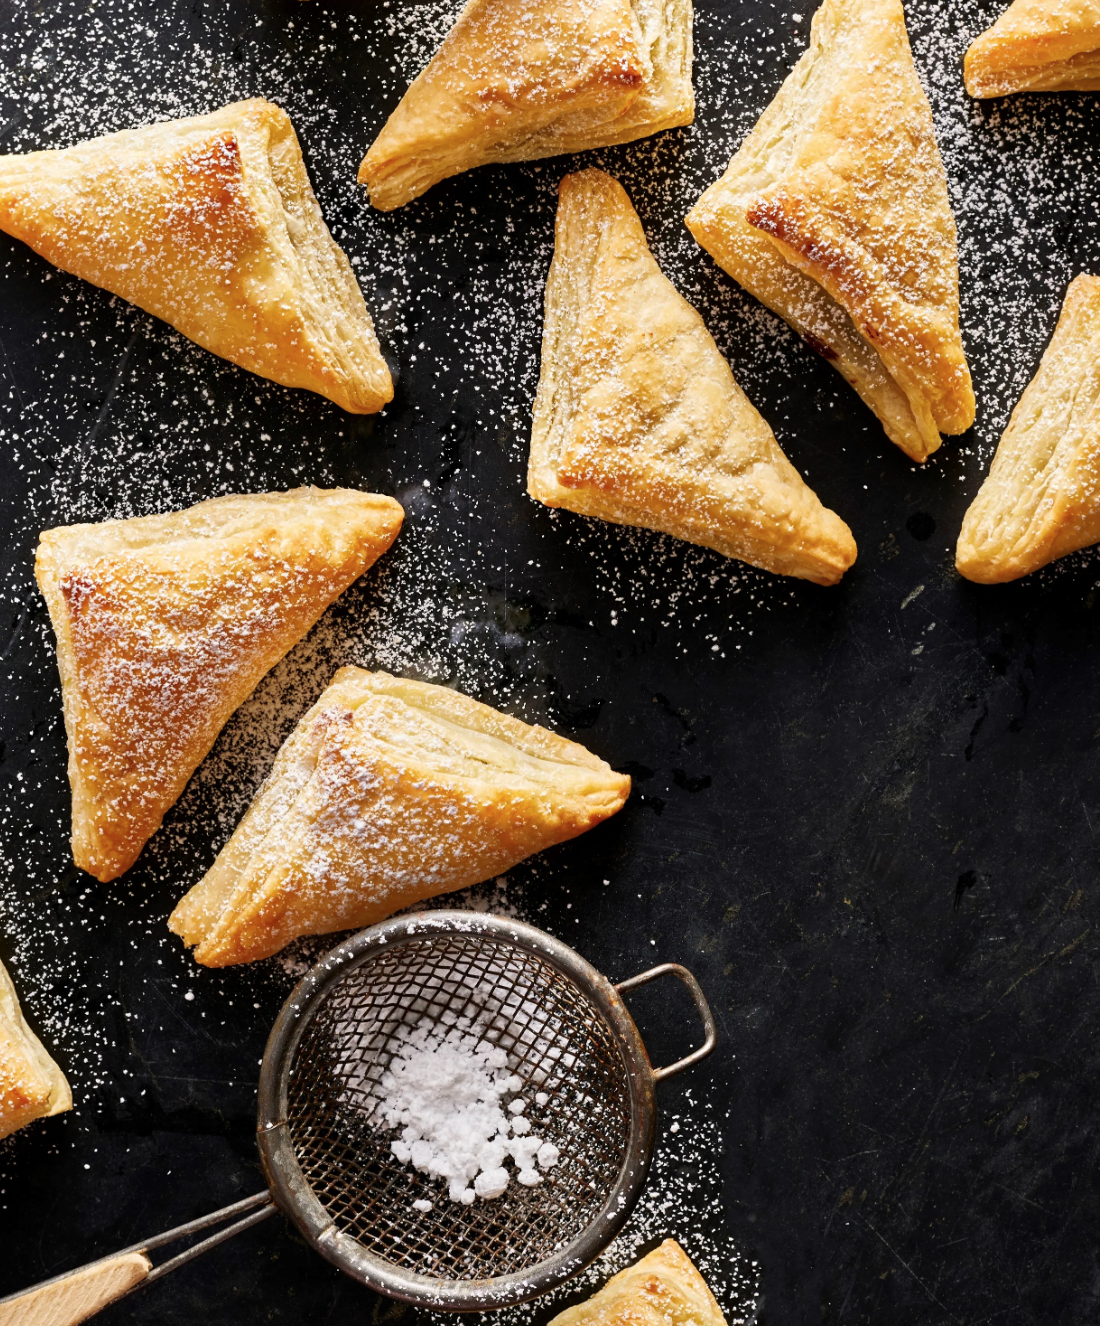 You only need five ingredients to make this easy handheld dessert: frozen puff pastry, chocolate-hazelnut spread, chopped hazelnuts, an egg, and a bit of water.